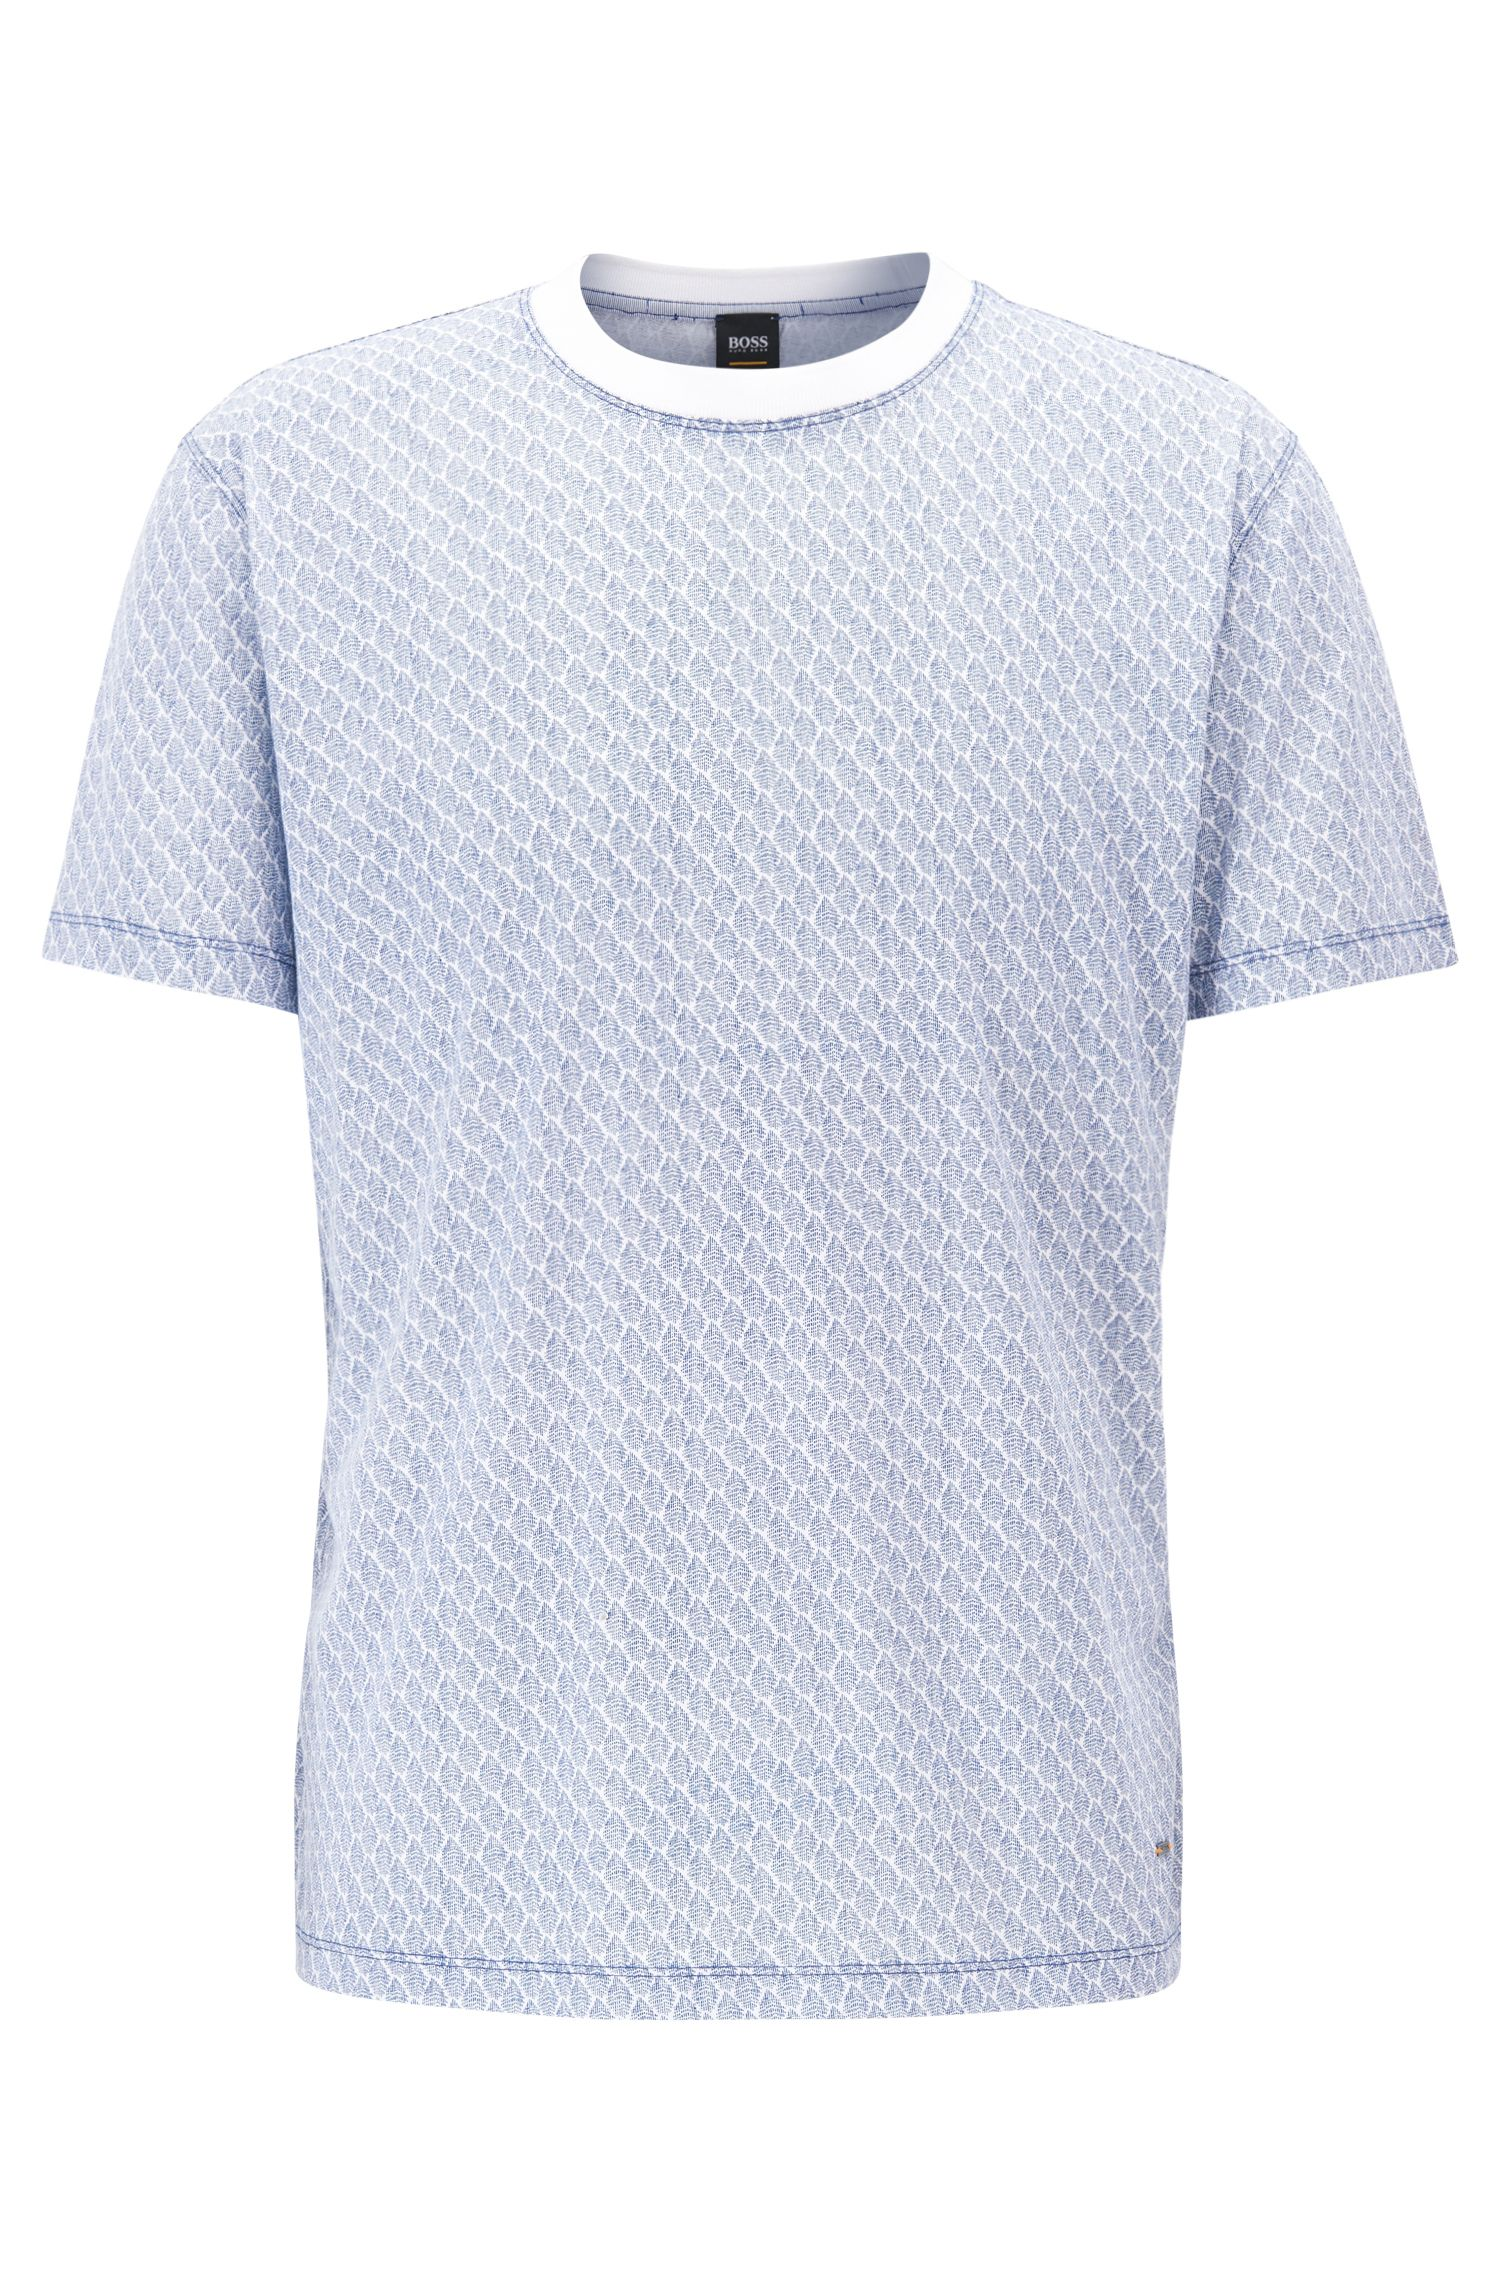 Relaxed fit T-shirt in patterned cotton jersey